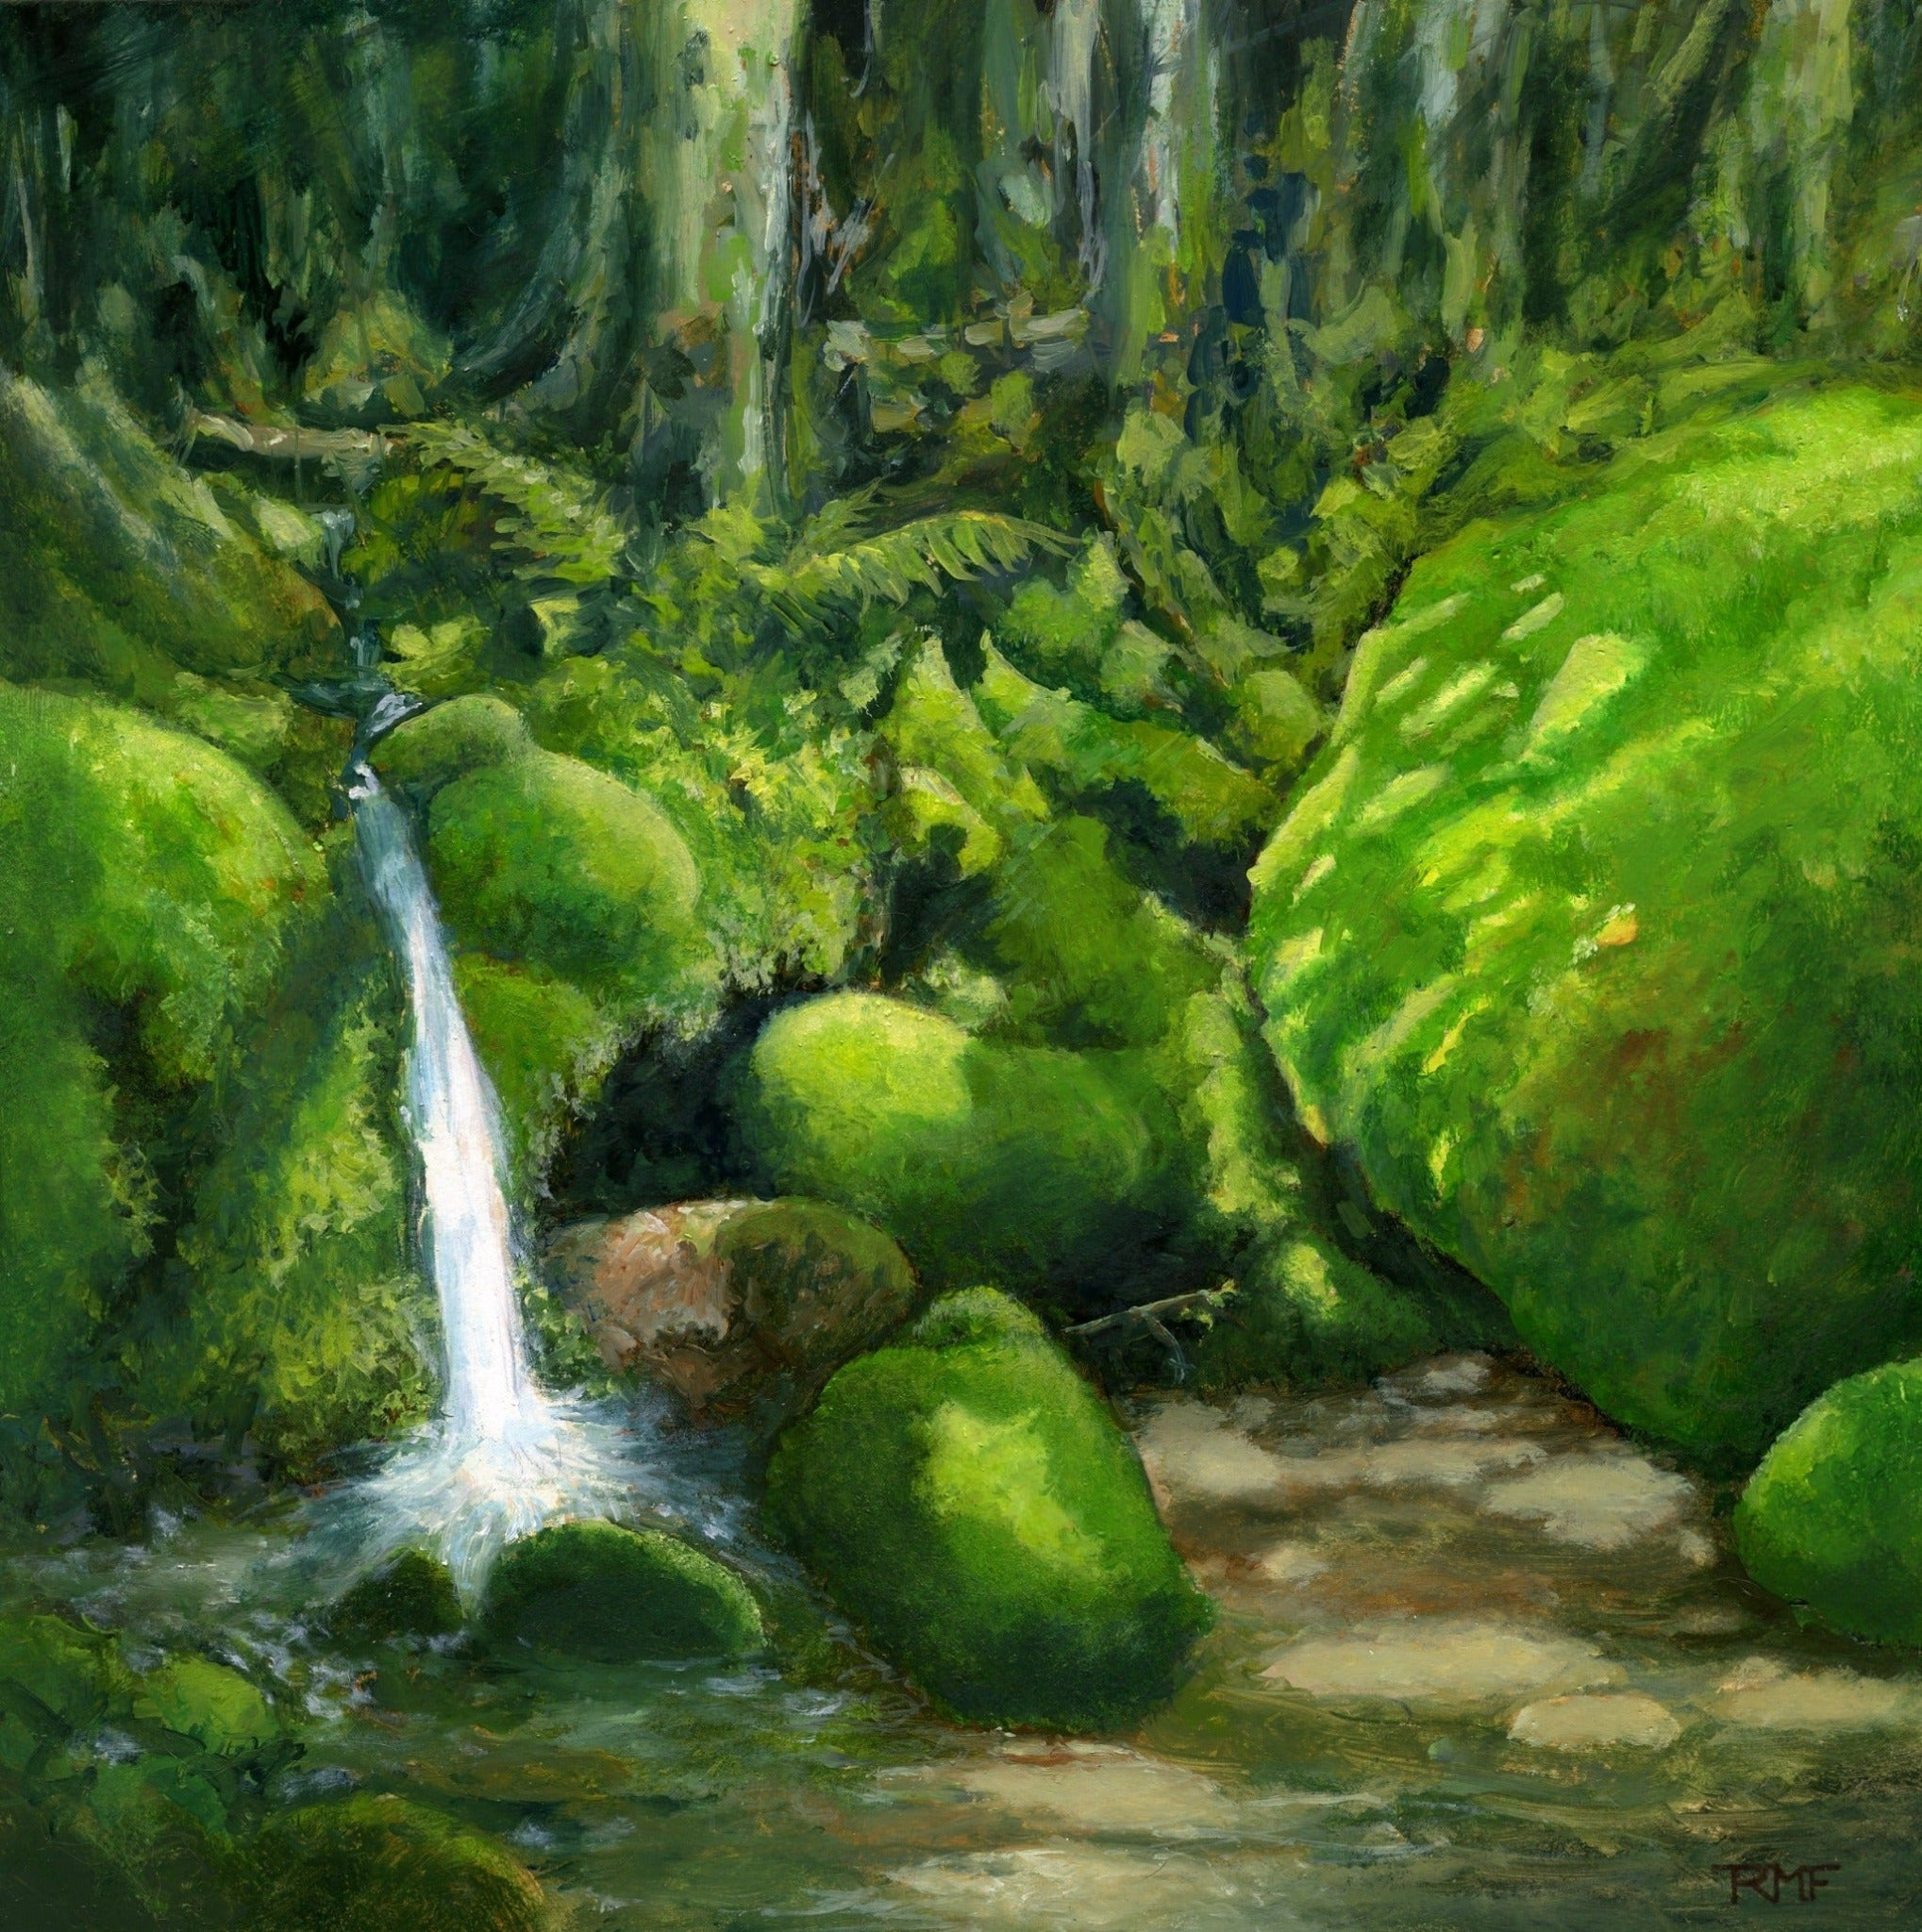 """Deep in Mossy Woods,"" 10x10 inch oil painting on panel, by Rebecca M. Fullerton. White Mountain art and landscape paintings."